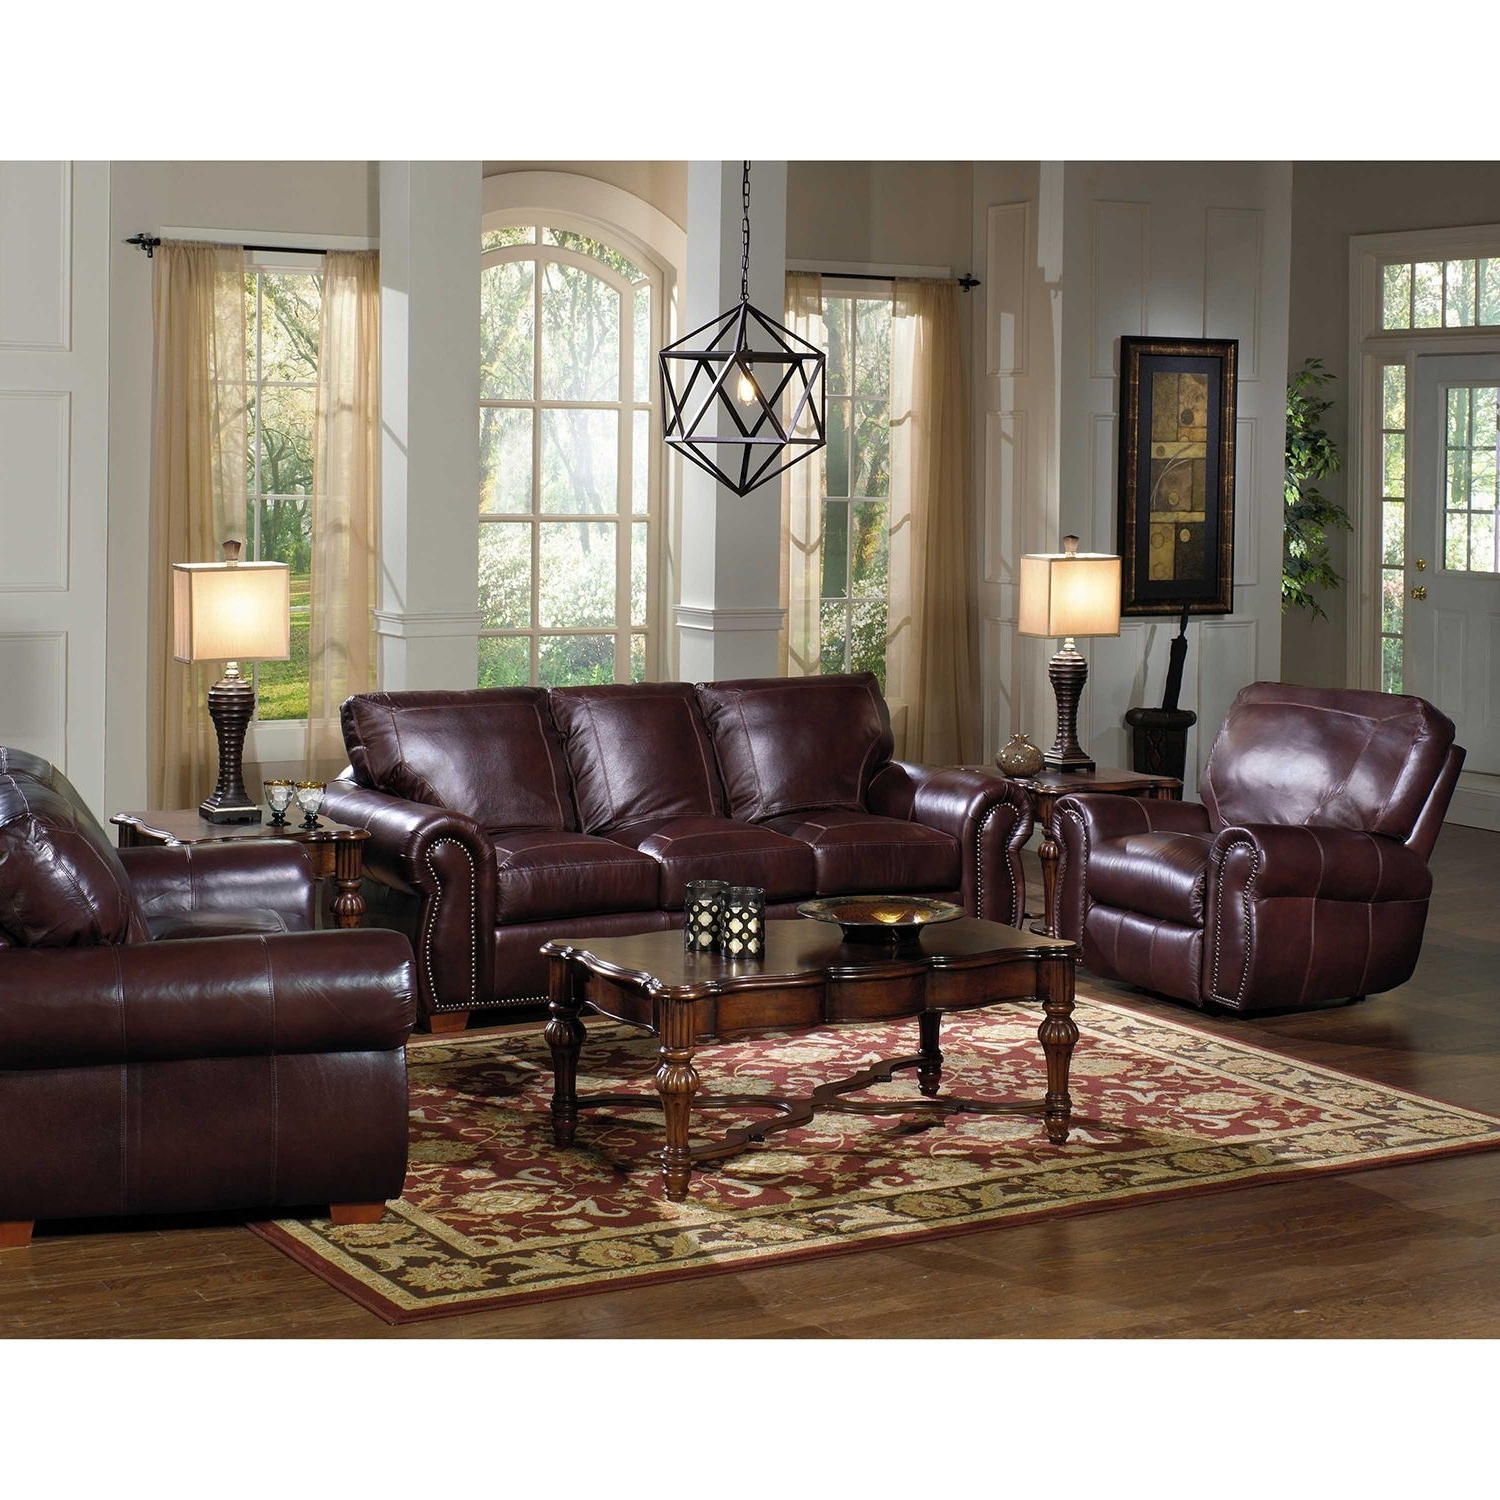 2017 Kingston Sectional Sofas Intended For Kingston Top Grain Leather Sofa, Loveseat And Recliner Living Room (View 6 of 15)